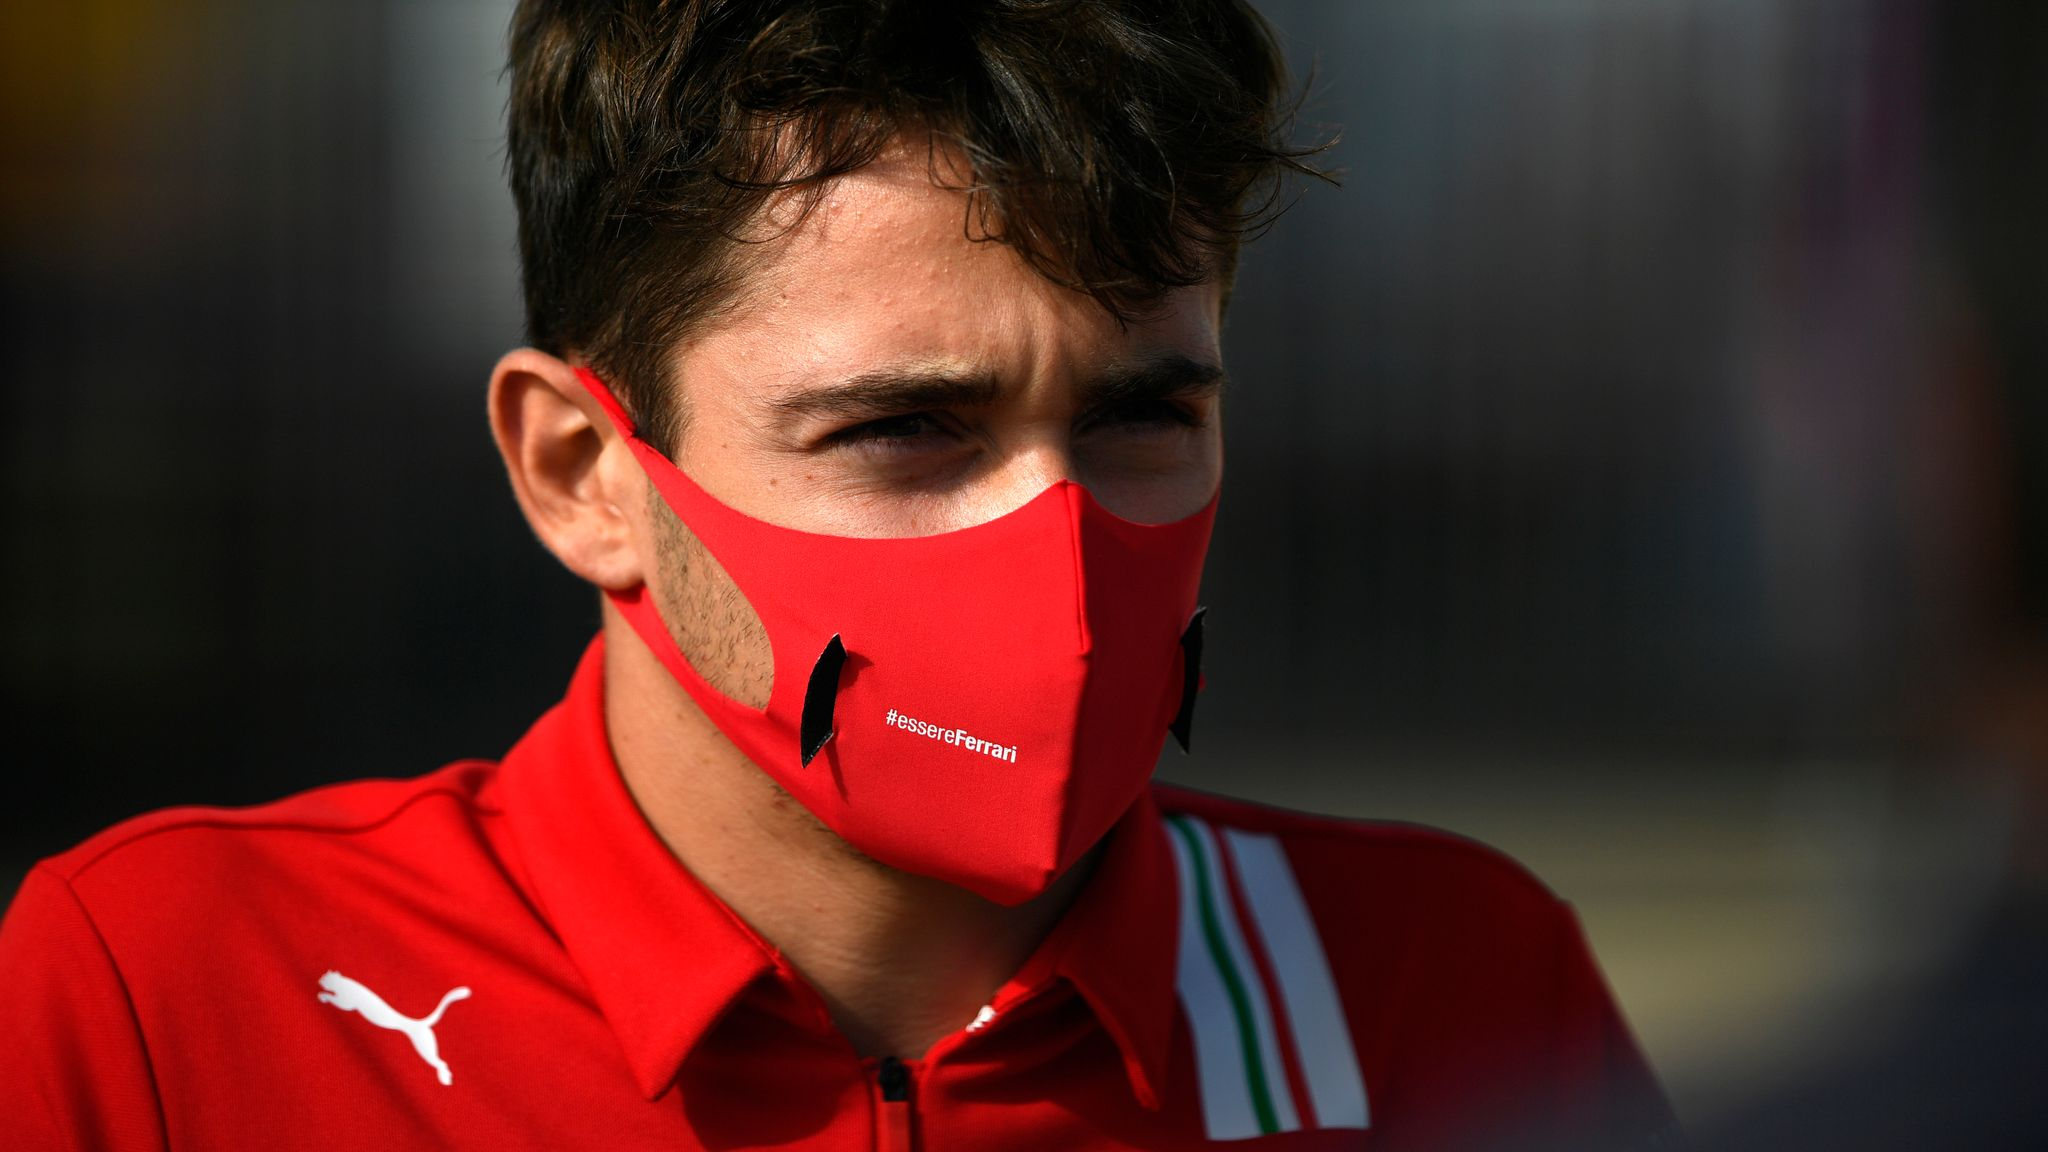 Charles Leclerc angered by accusations of racism on social media | F1 News